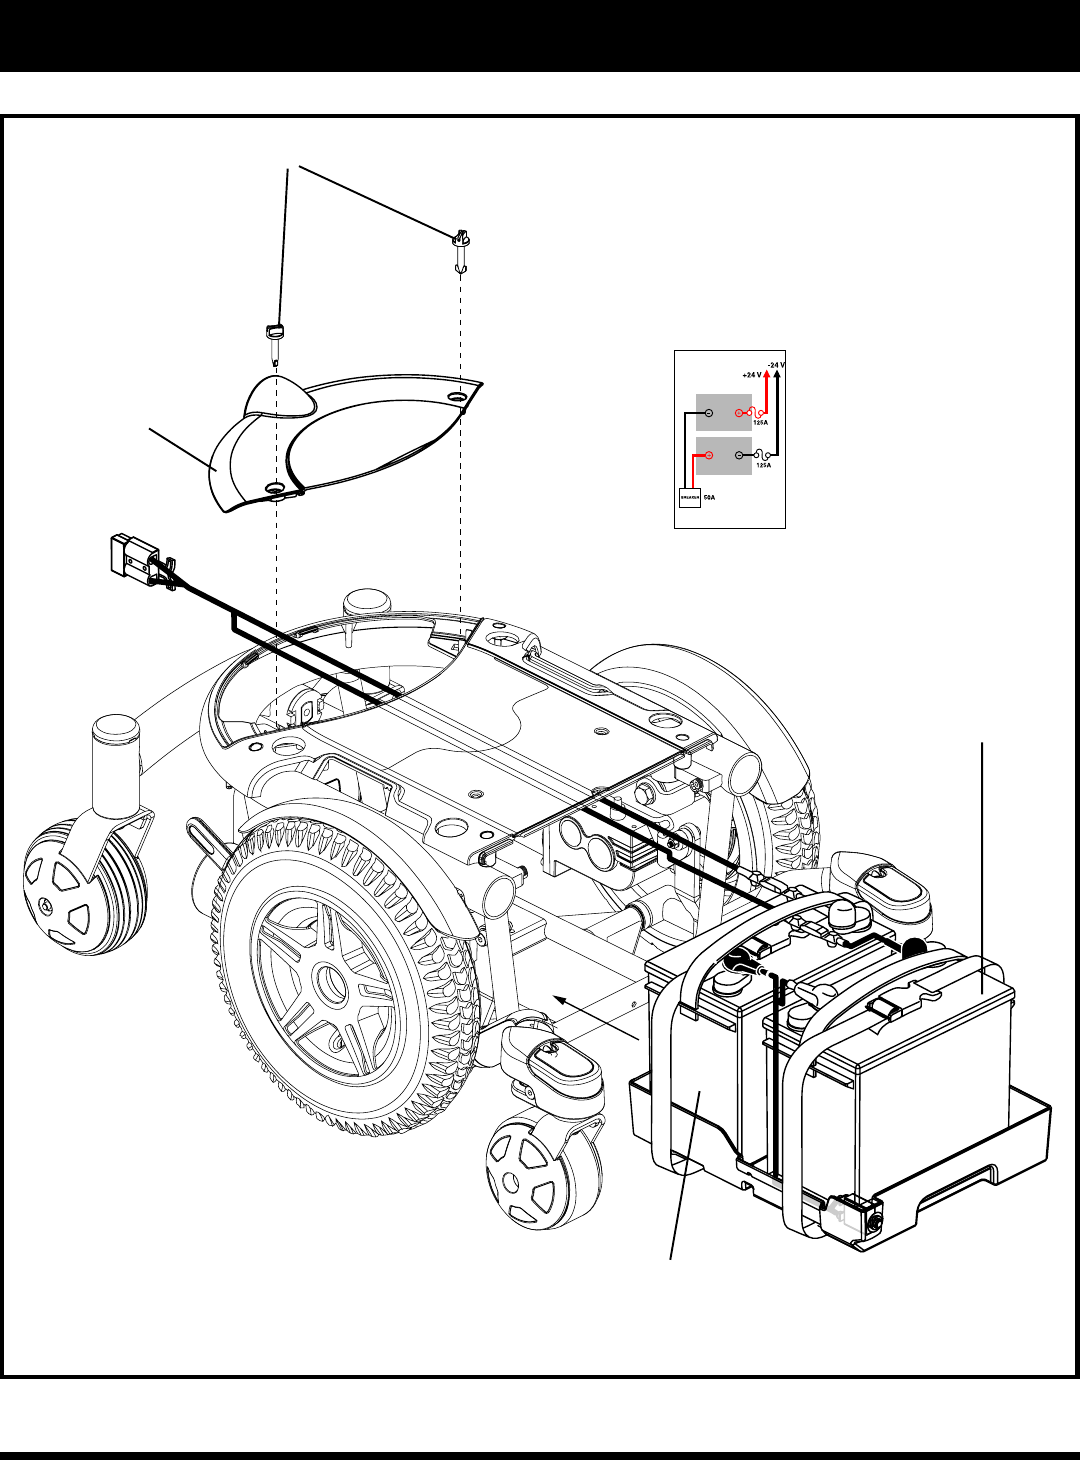 1b922ffe 36be 4352 9997 ae54f648c0b5 bg27 page 39 of pride mobility mobility aid jazzy 600 xl user guide jazzy scooter wiring diagram at creativeand.co